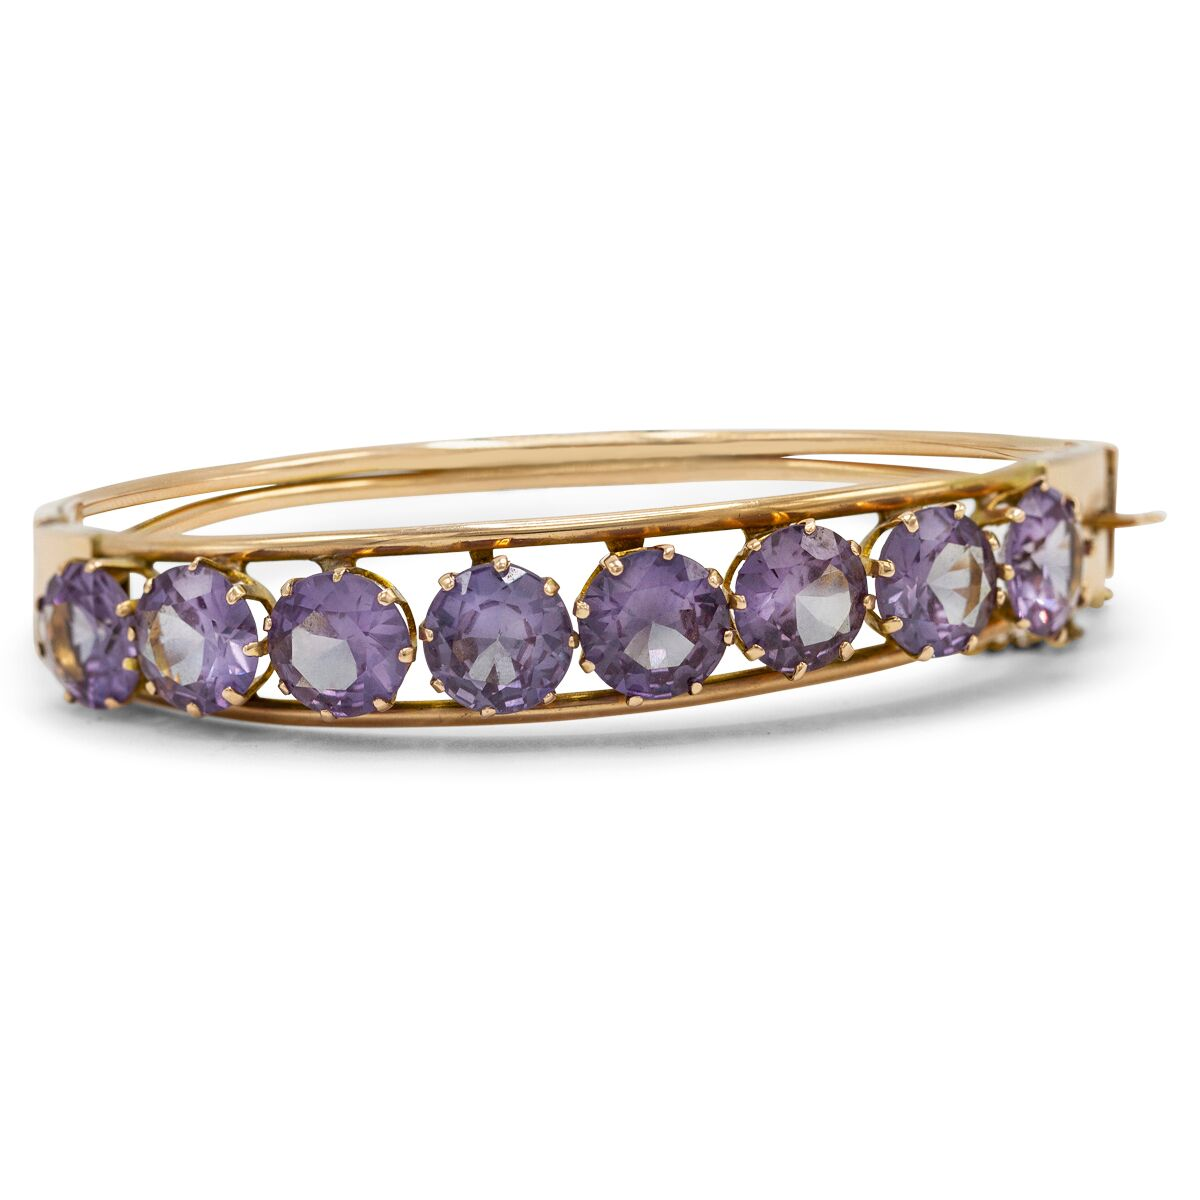 Amethyst Row Bracelet in 14K Yellow Gold